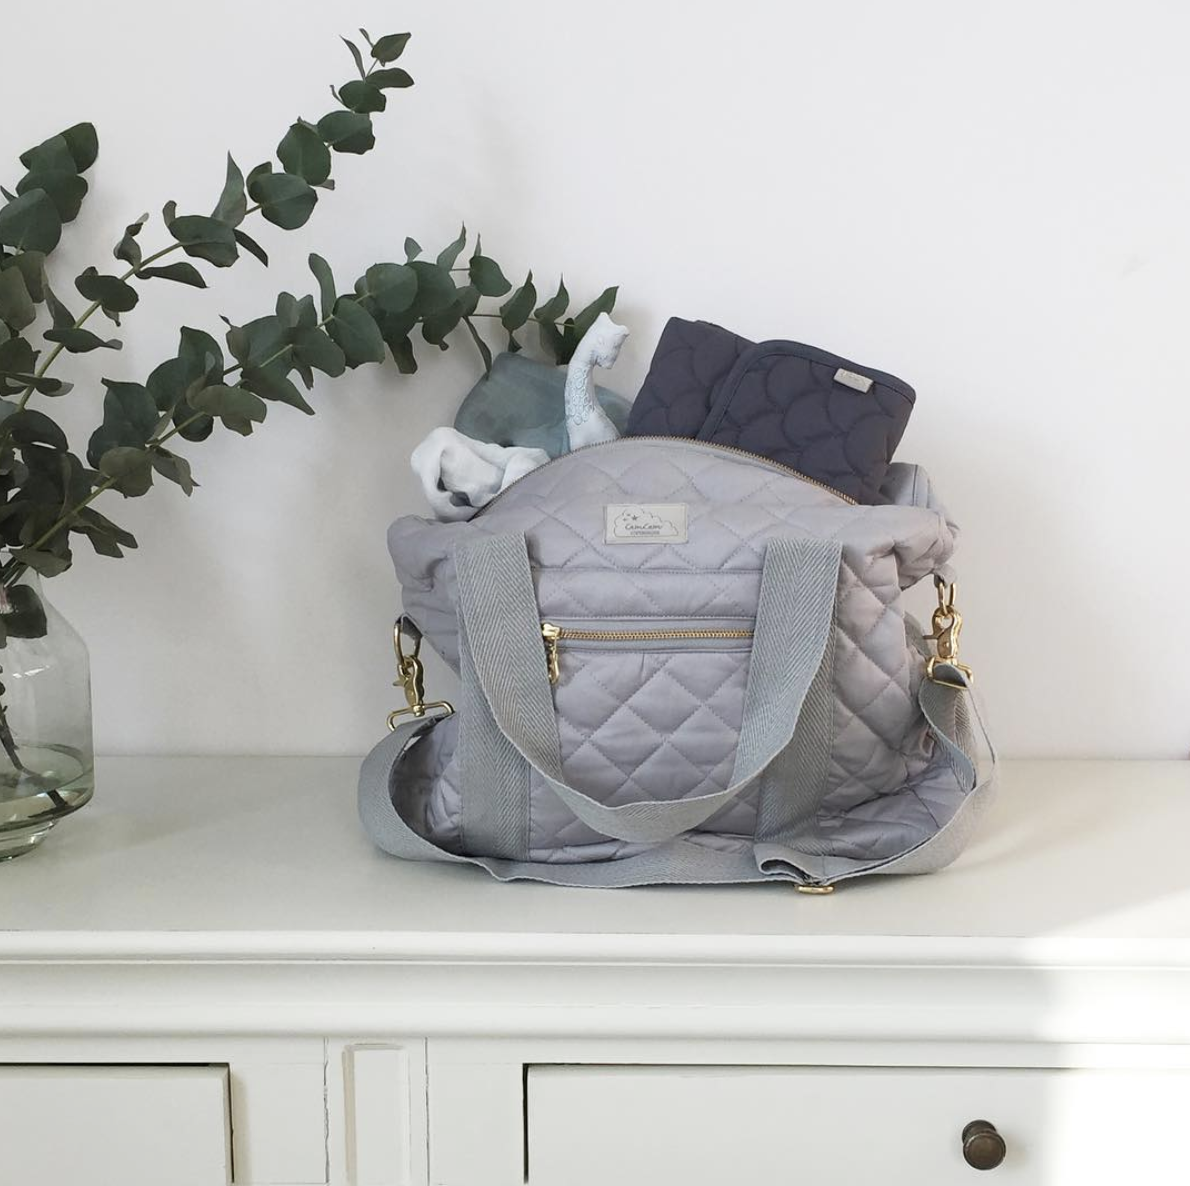 Mums nappy bag with portable changing mat